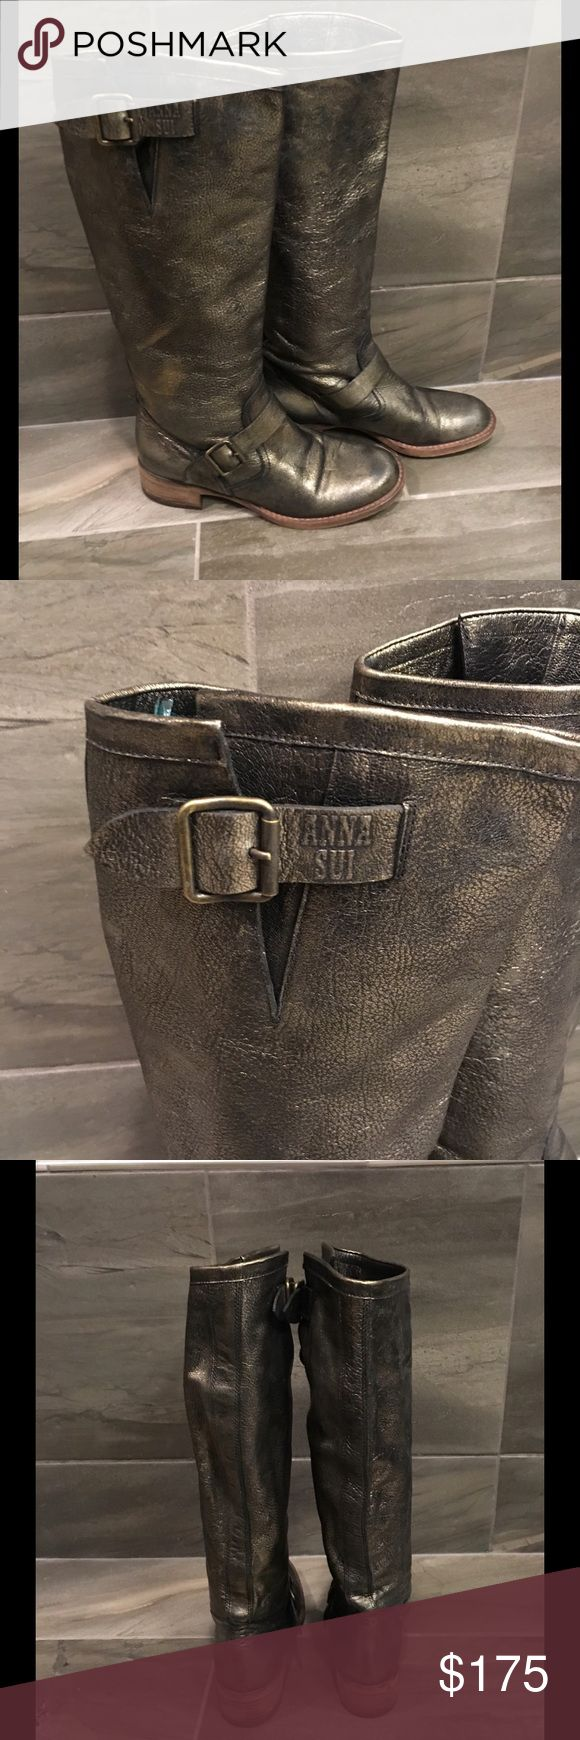 """Anna Sui Metallic Riding Boot Sz. 38 1/3"""" Anna Sui Metallic Riding Boot. Beautiful color. Shaft Measures 14"""" on back from Top of Heel. Great Condition! Approx. Circumference around top 14 1/2"""". Stacked heel 1 3/8"""" Anna Sui Shoes"""